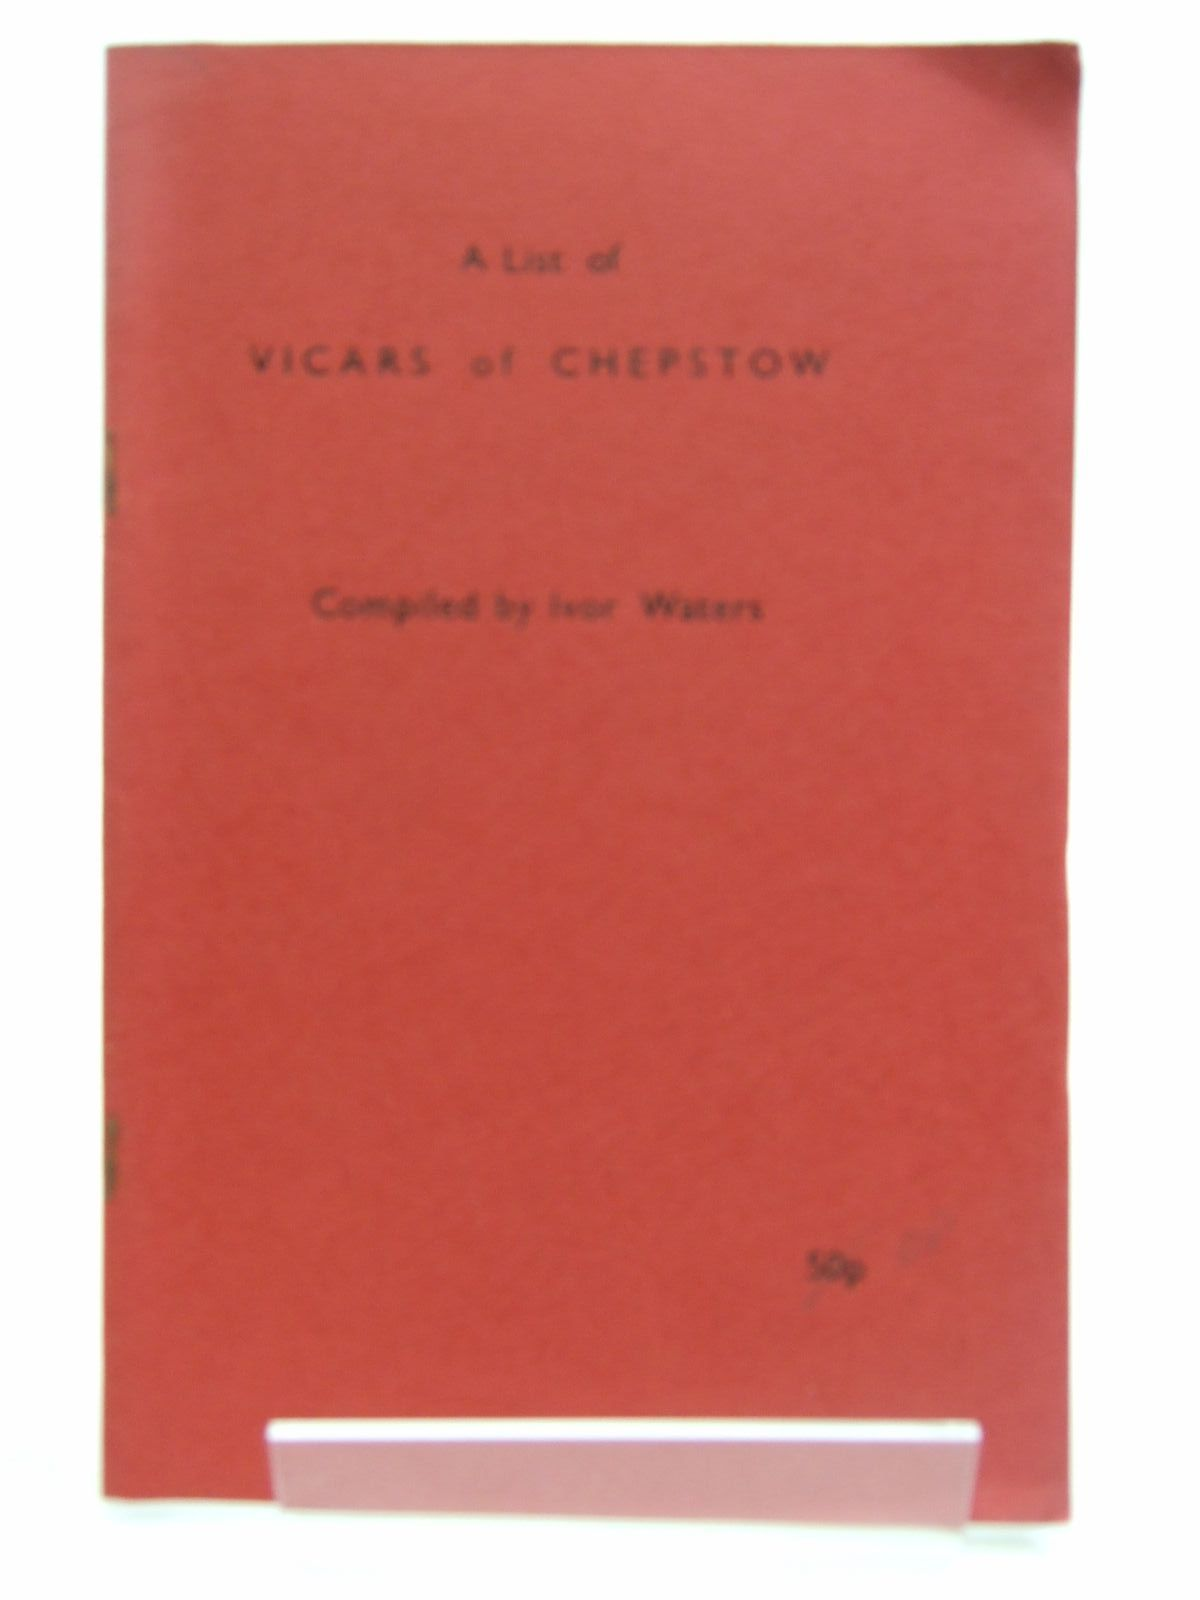 Photo of A LIST OF VICARS OF CHEPSTOW written by Waters, Ivor published by Ivor Waters (STOCK CODE: 2109387)  for sale by Stella & Rose's Books